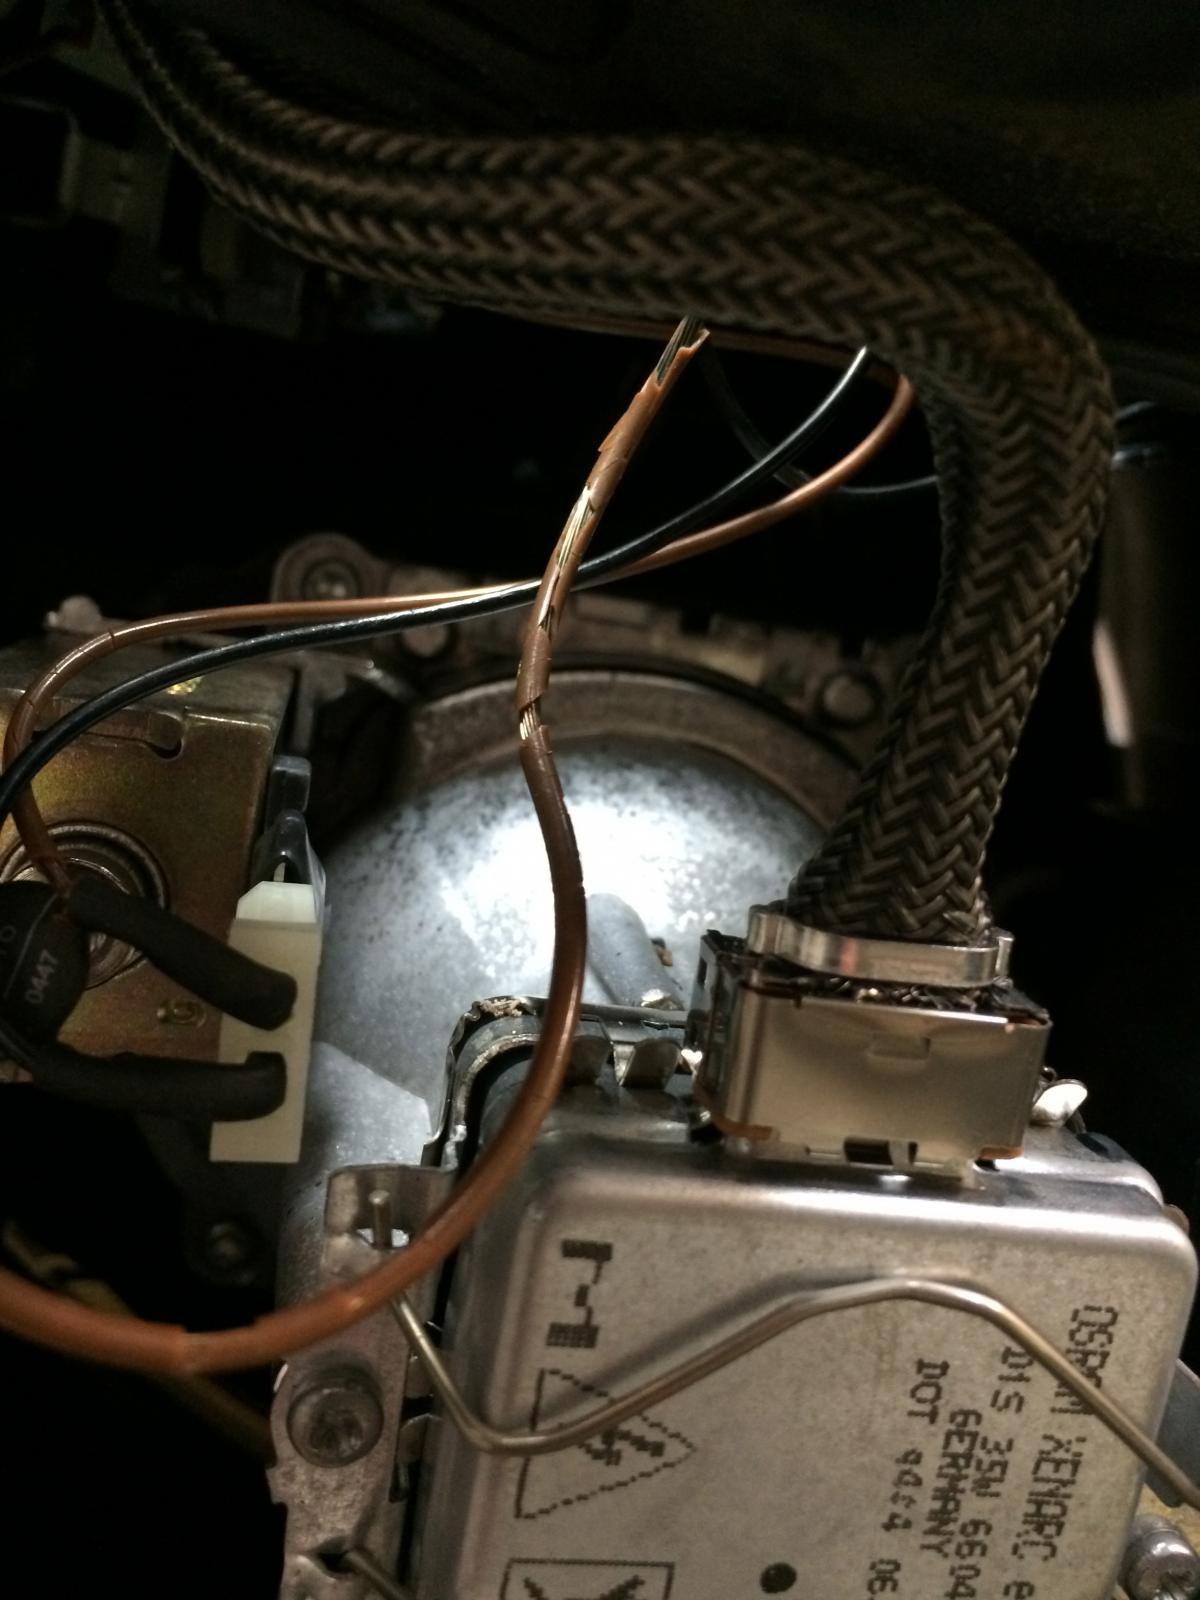 headlight internal wire harness deteriorating 9pa, 9pa1 (cayenne Ford Expedition Headlight Wiring Harness post 72469 0 74277700 1416532980_thumb j